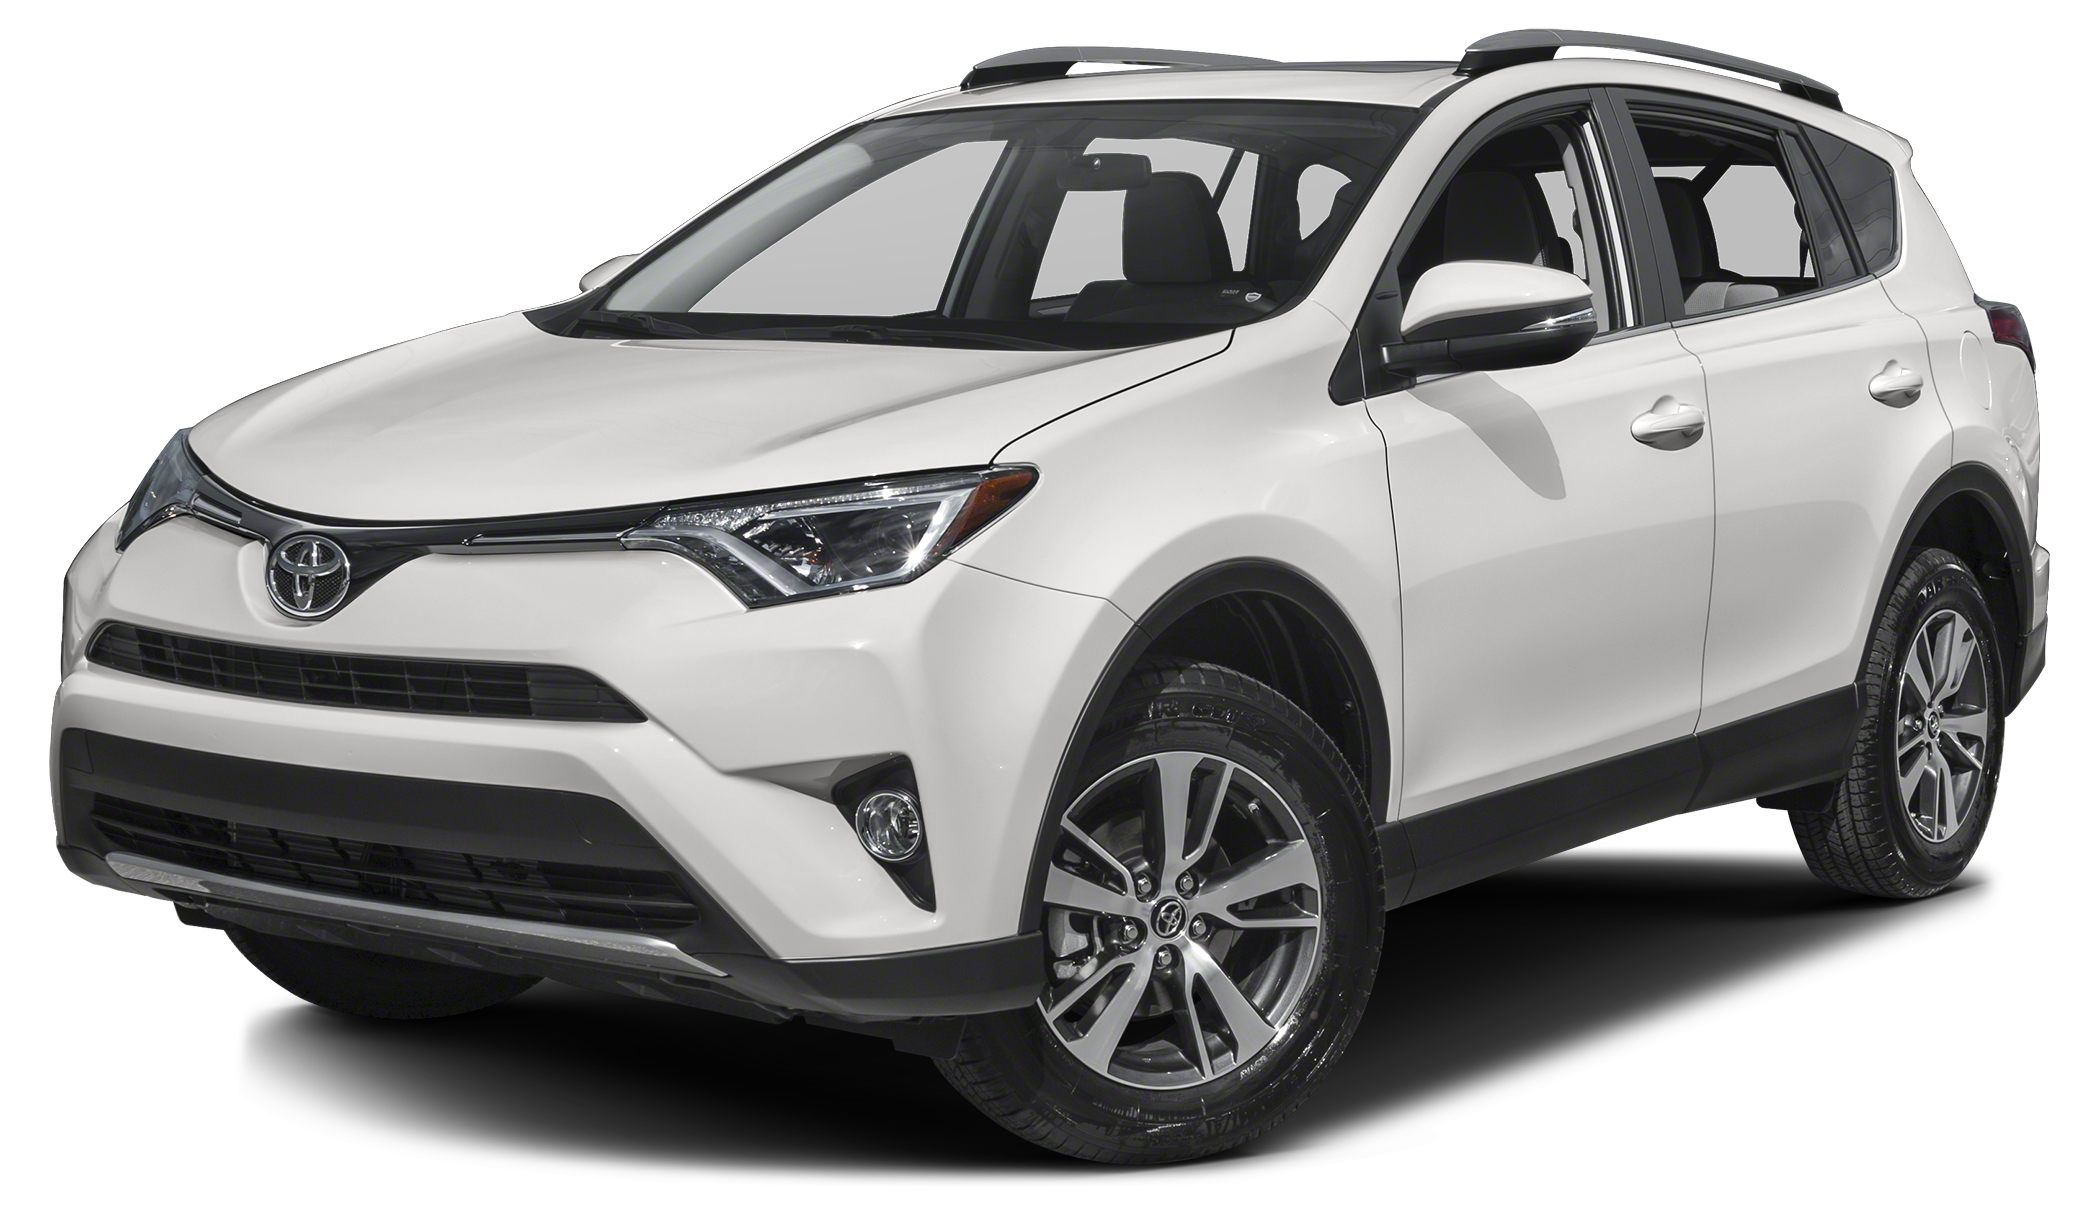 2016 Toyota RAV4 XLE Introducing the 2016 Toyota RAV4 This SUV is purpose-built for the most trea